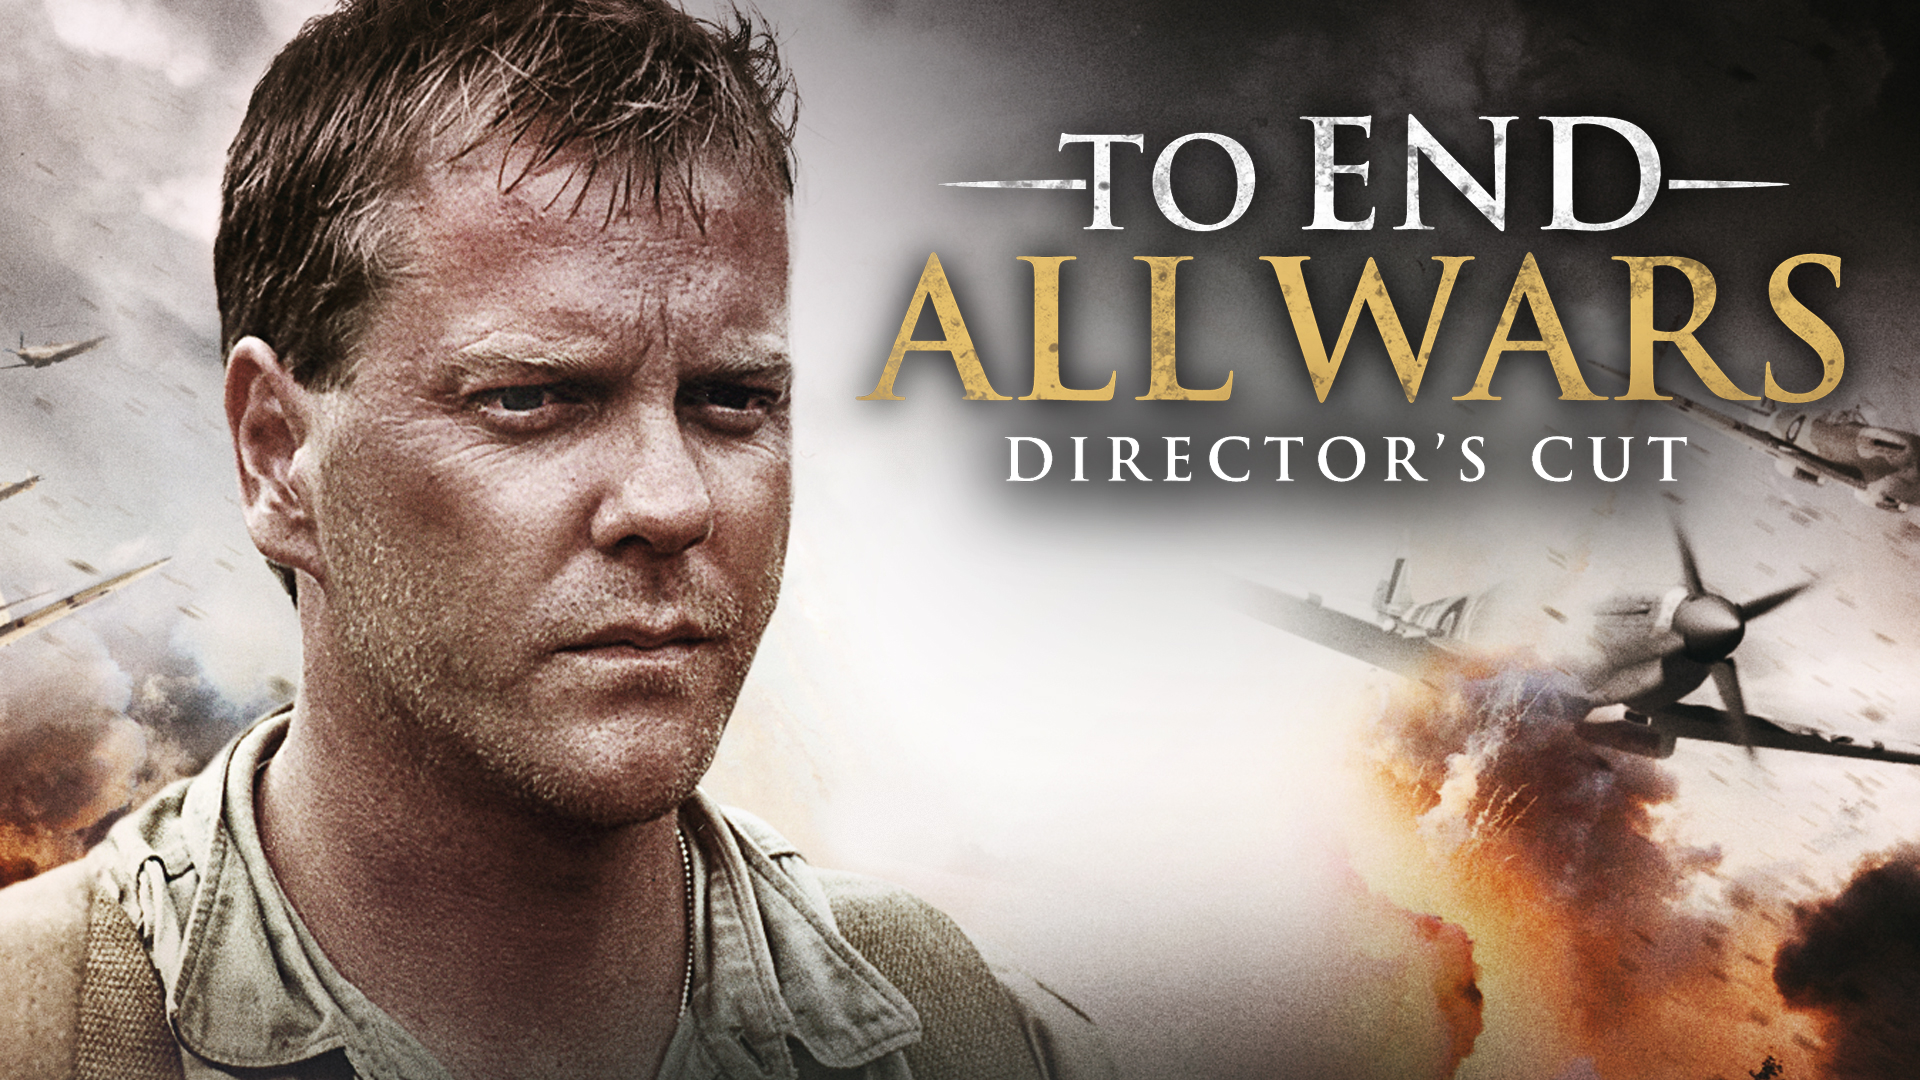 To End All Wars: Director's Cut